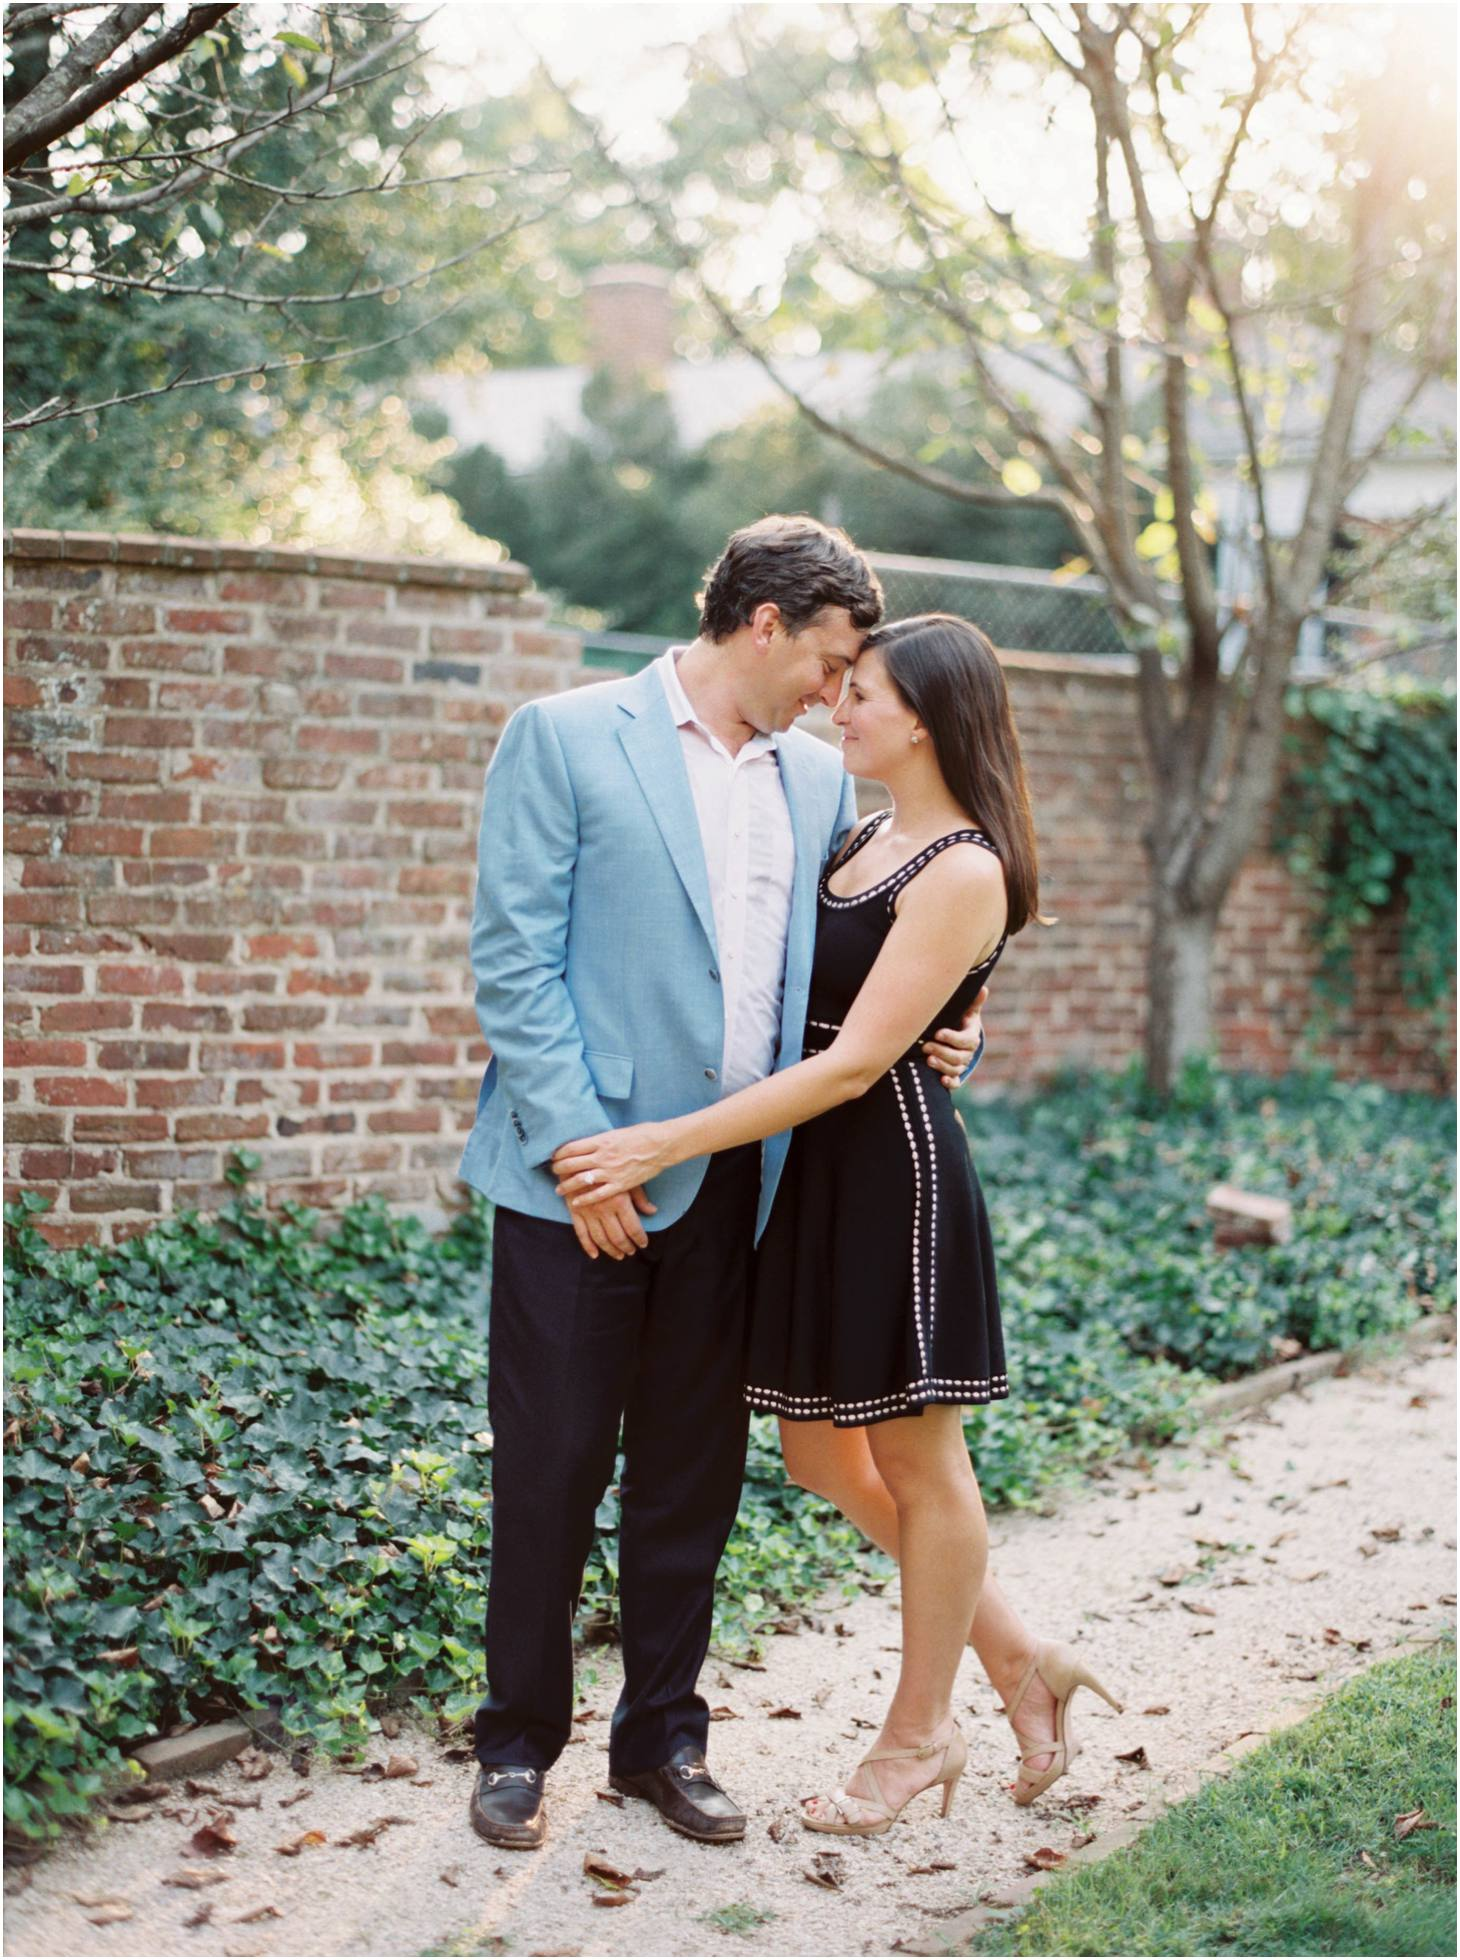 kim-stockwell-photography-fine-art-film-engagements-charlottesville-virginia-meghan-and-taylor_0845